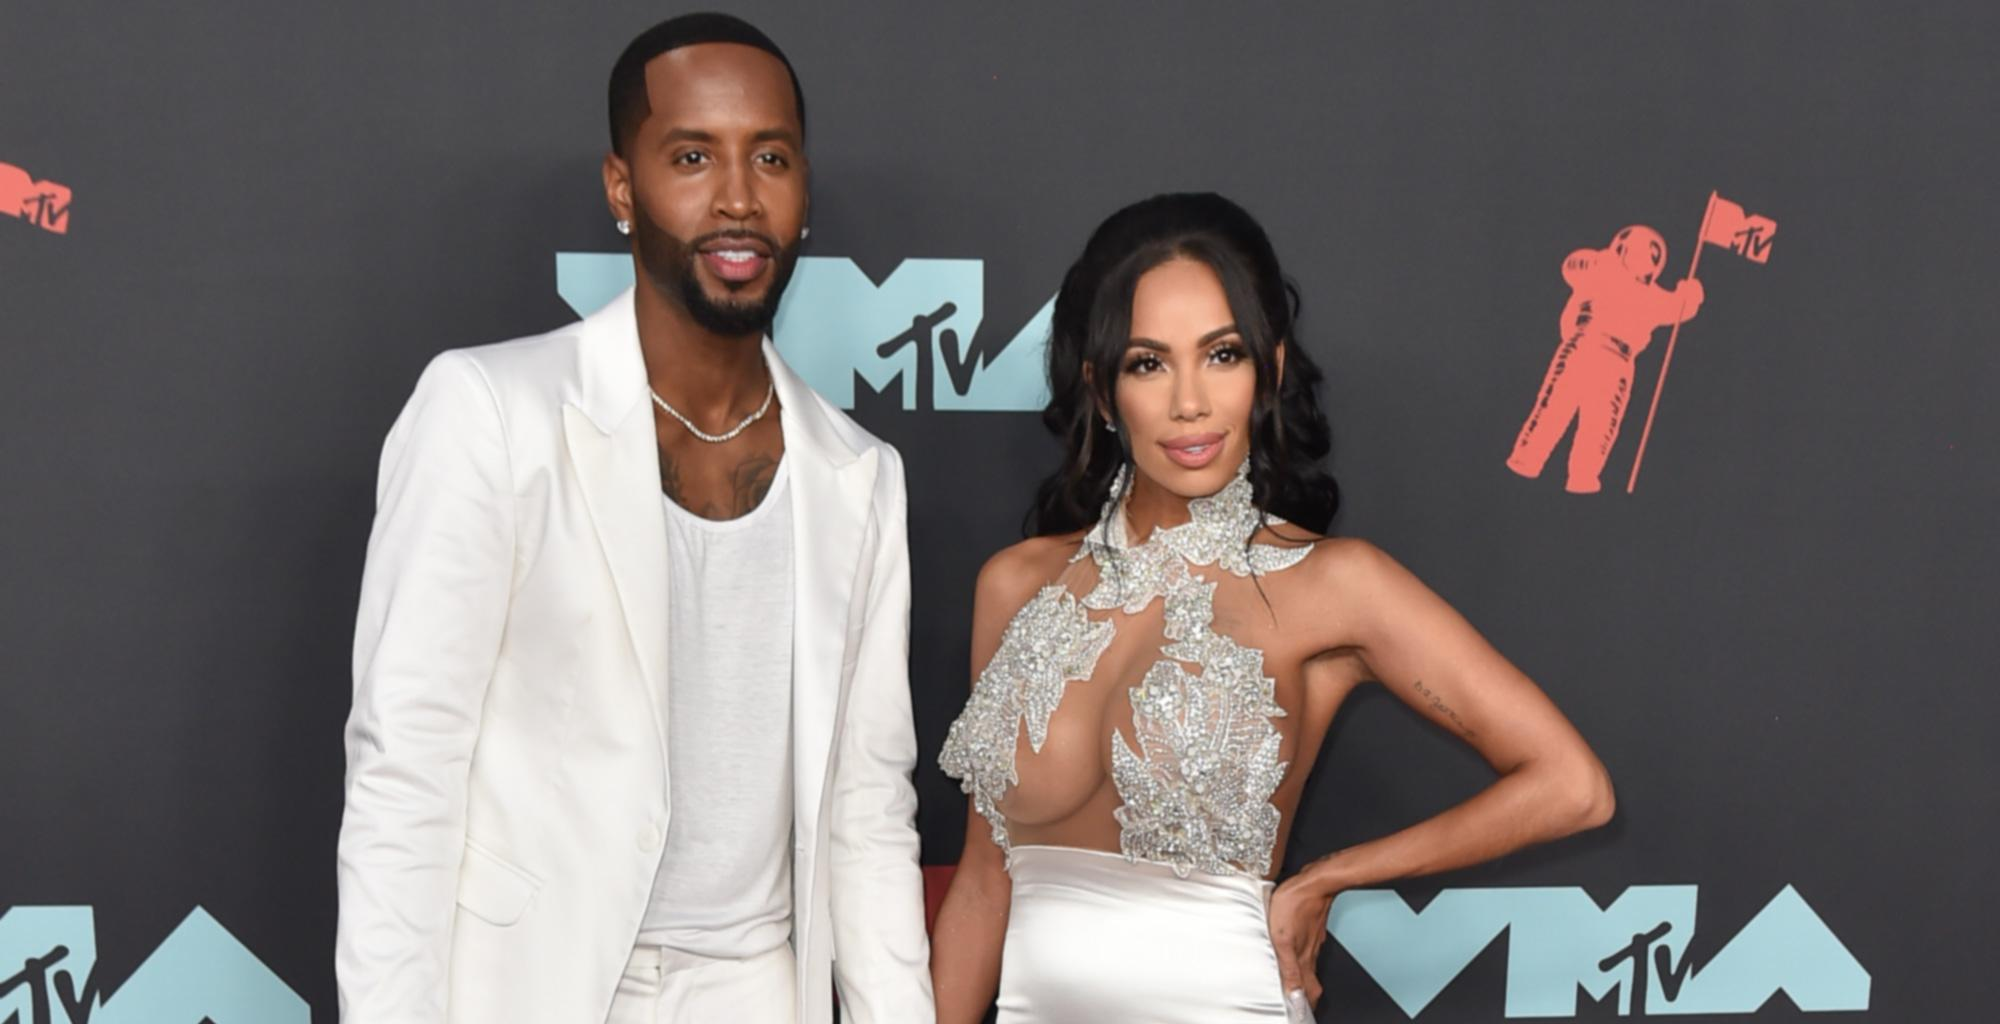 Erica Mena Flaunts Her Tattoo On Social Media And Fans Are In Awe